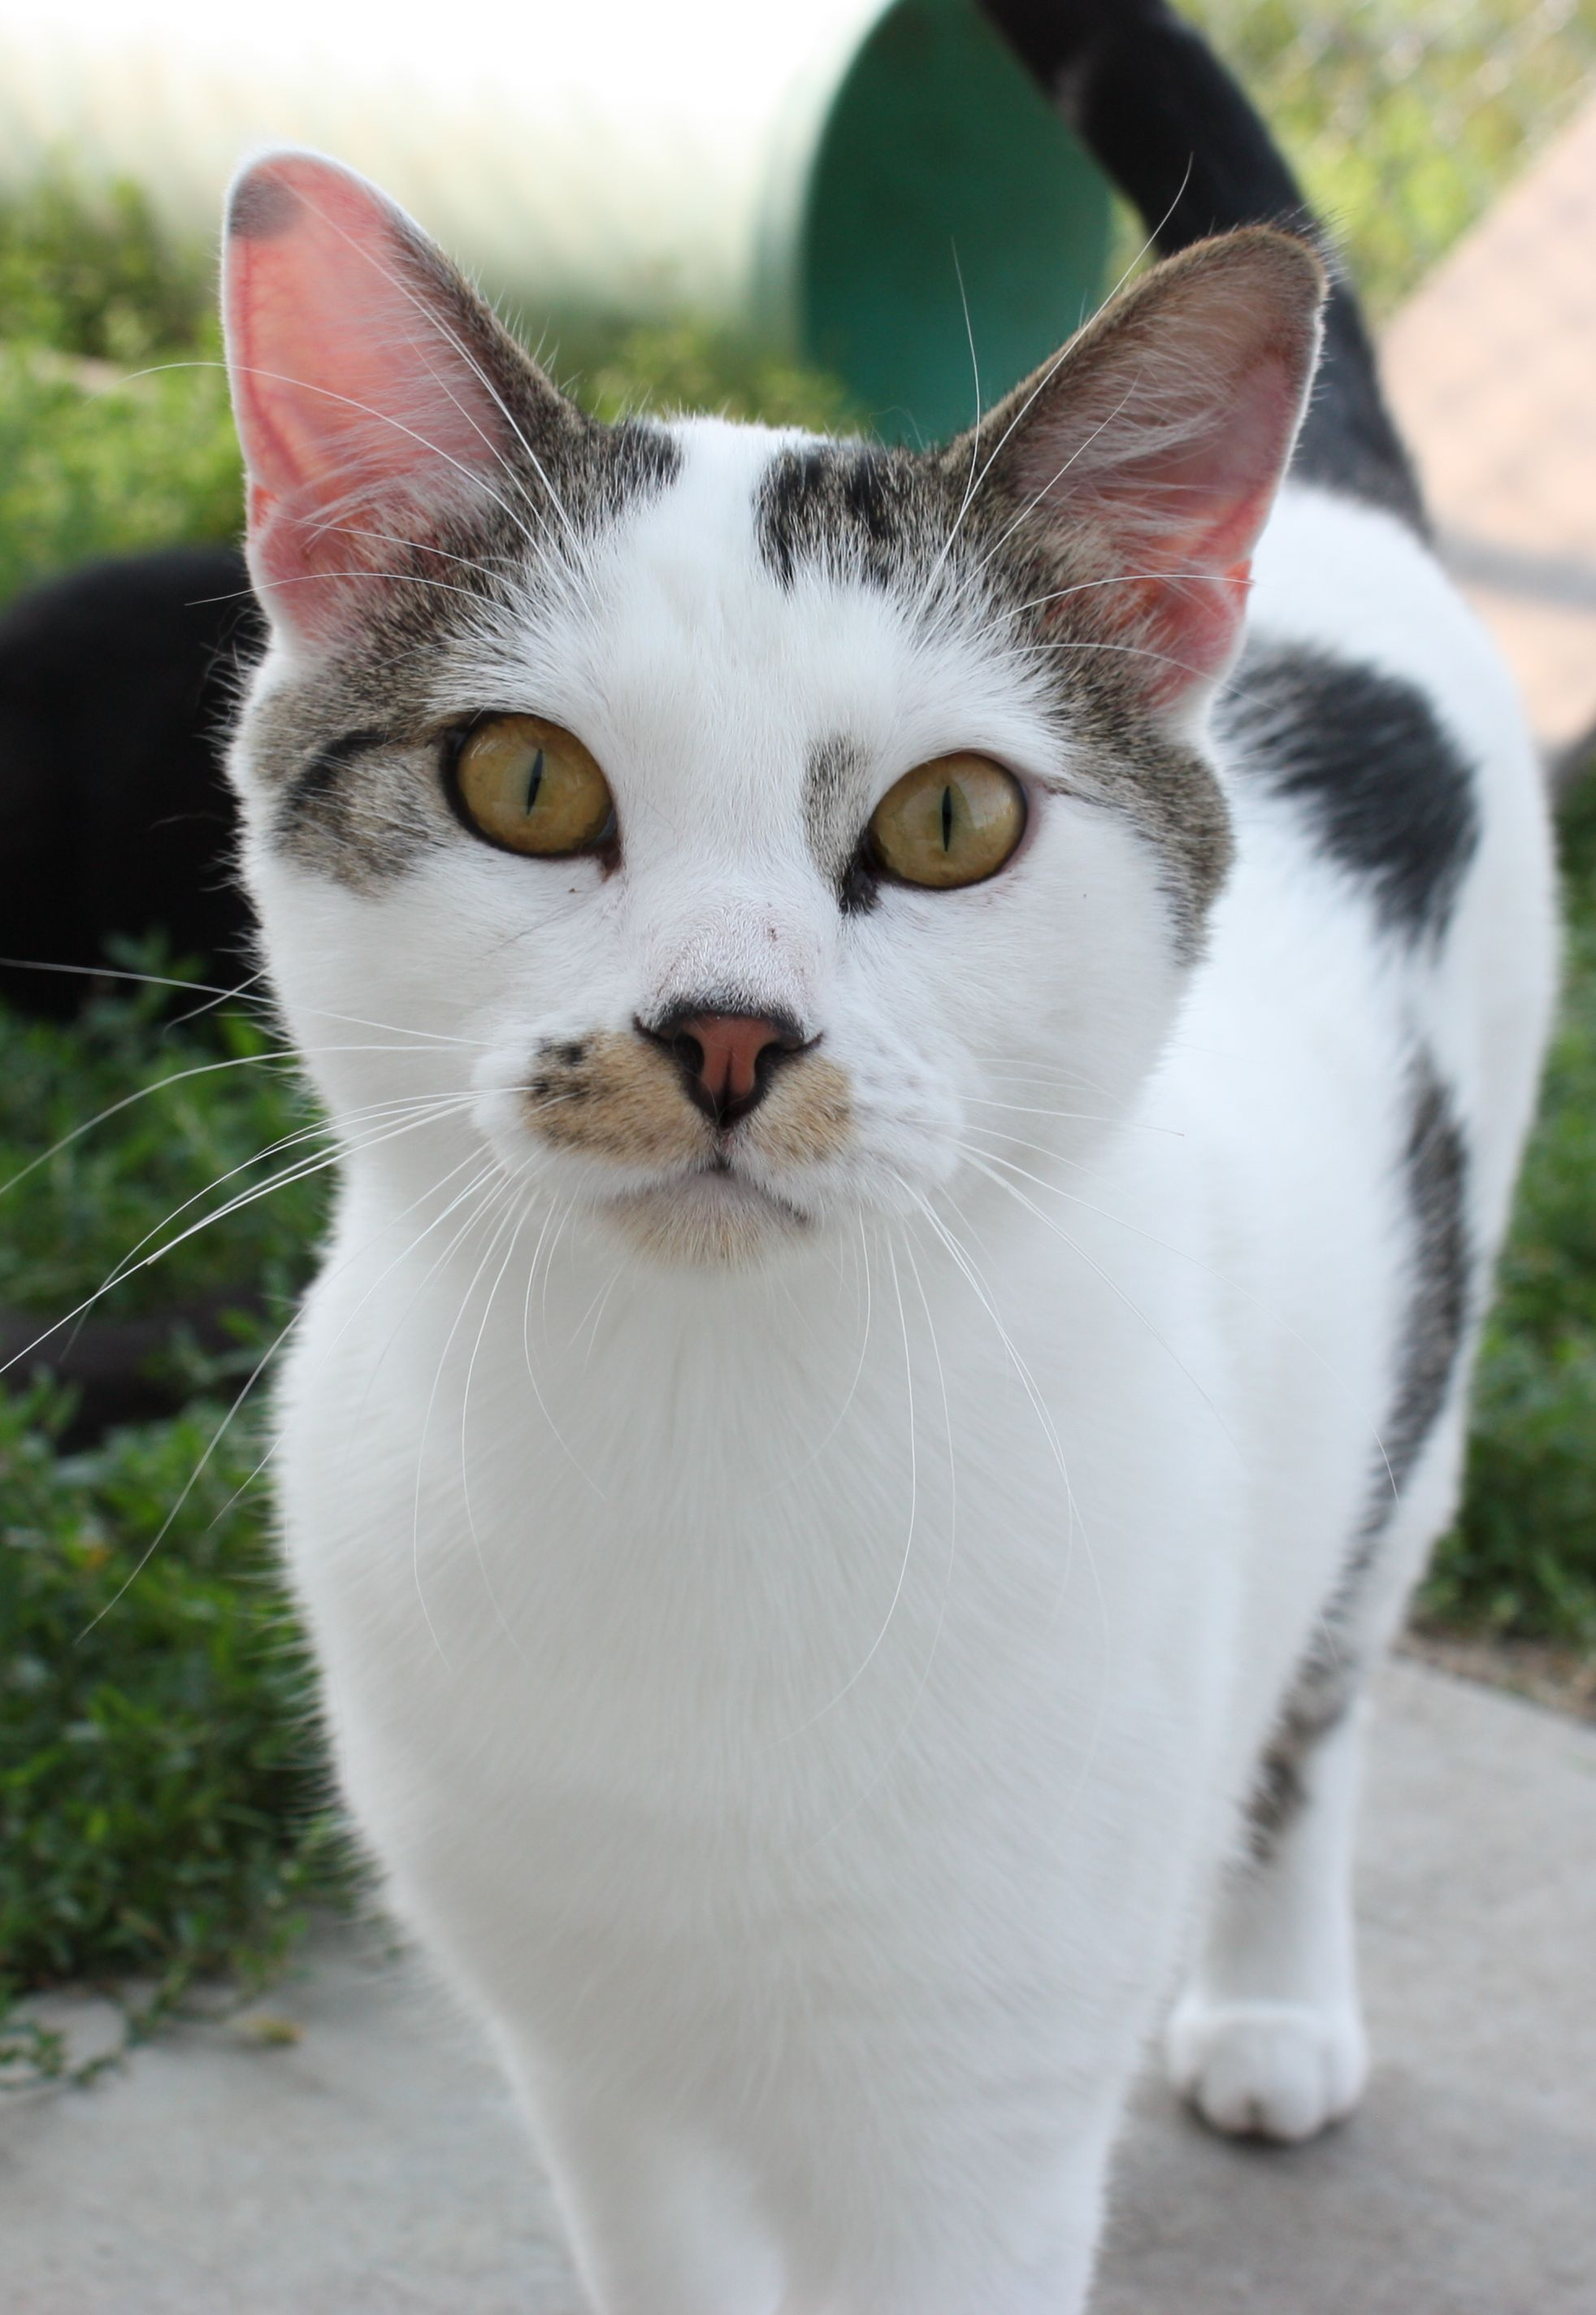 What We Do - Our objective is to improve life for cats, dogs and our community. St. Francis Animal Shelter was founded in January of 1997. We are a NO KILL shelter providing shelter for more than 170 animals each year along with low-cost vaccinations, microchipping, and spay & neuter clinics.